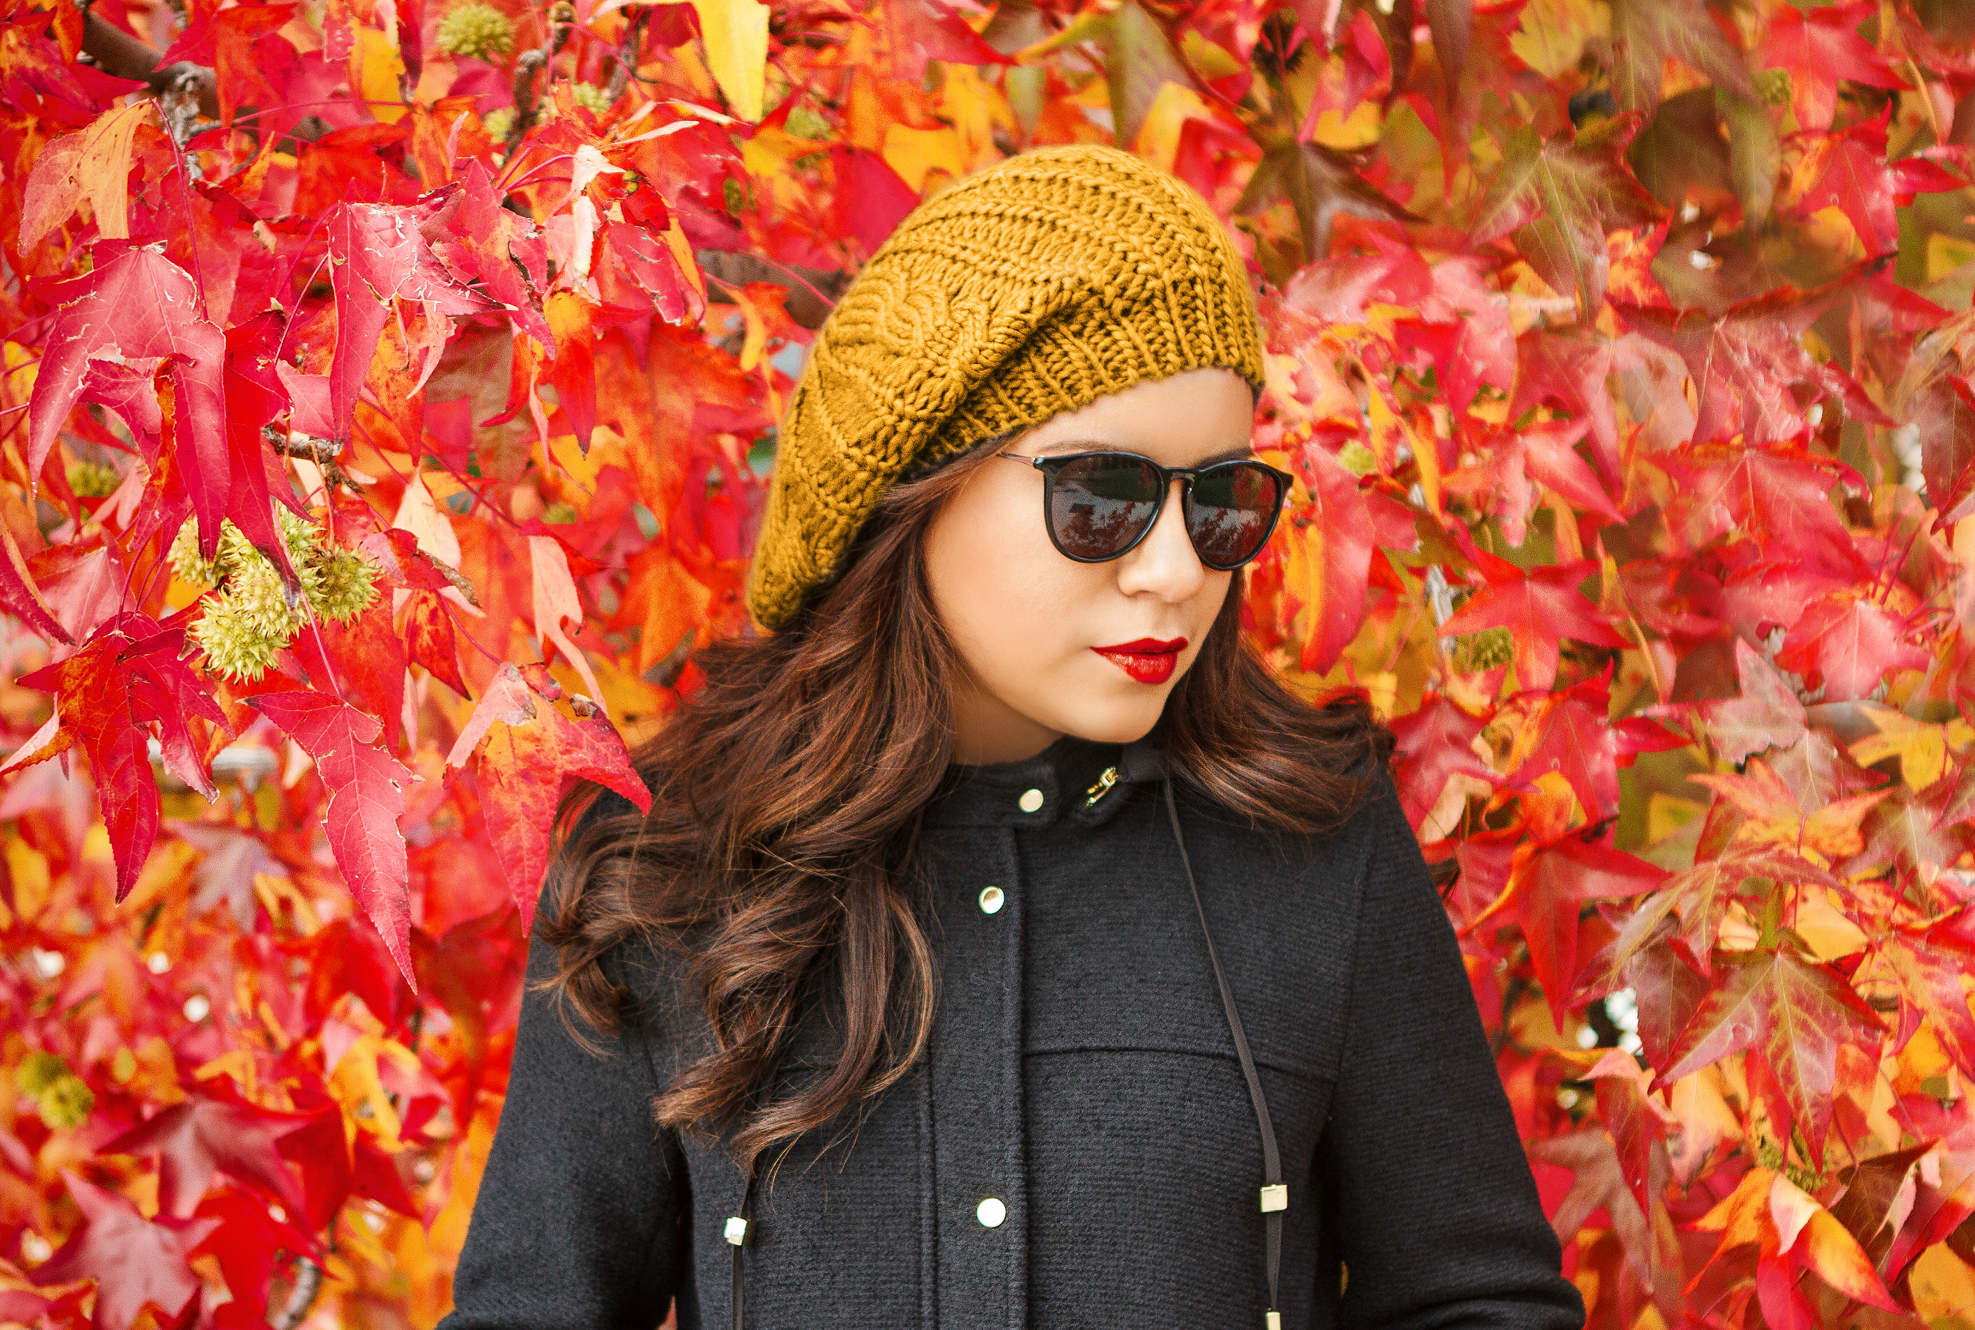 Woman wearing sunglasses and knit cap with leaves in background